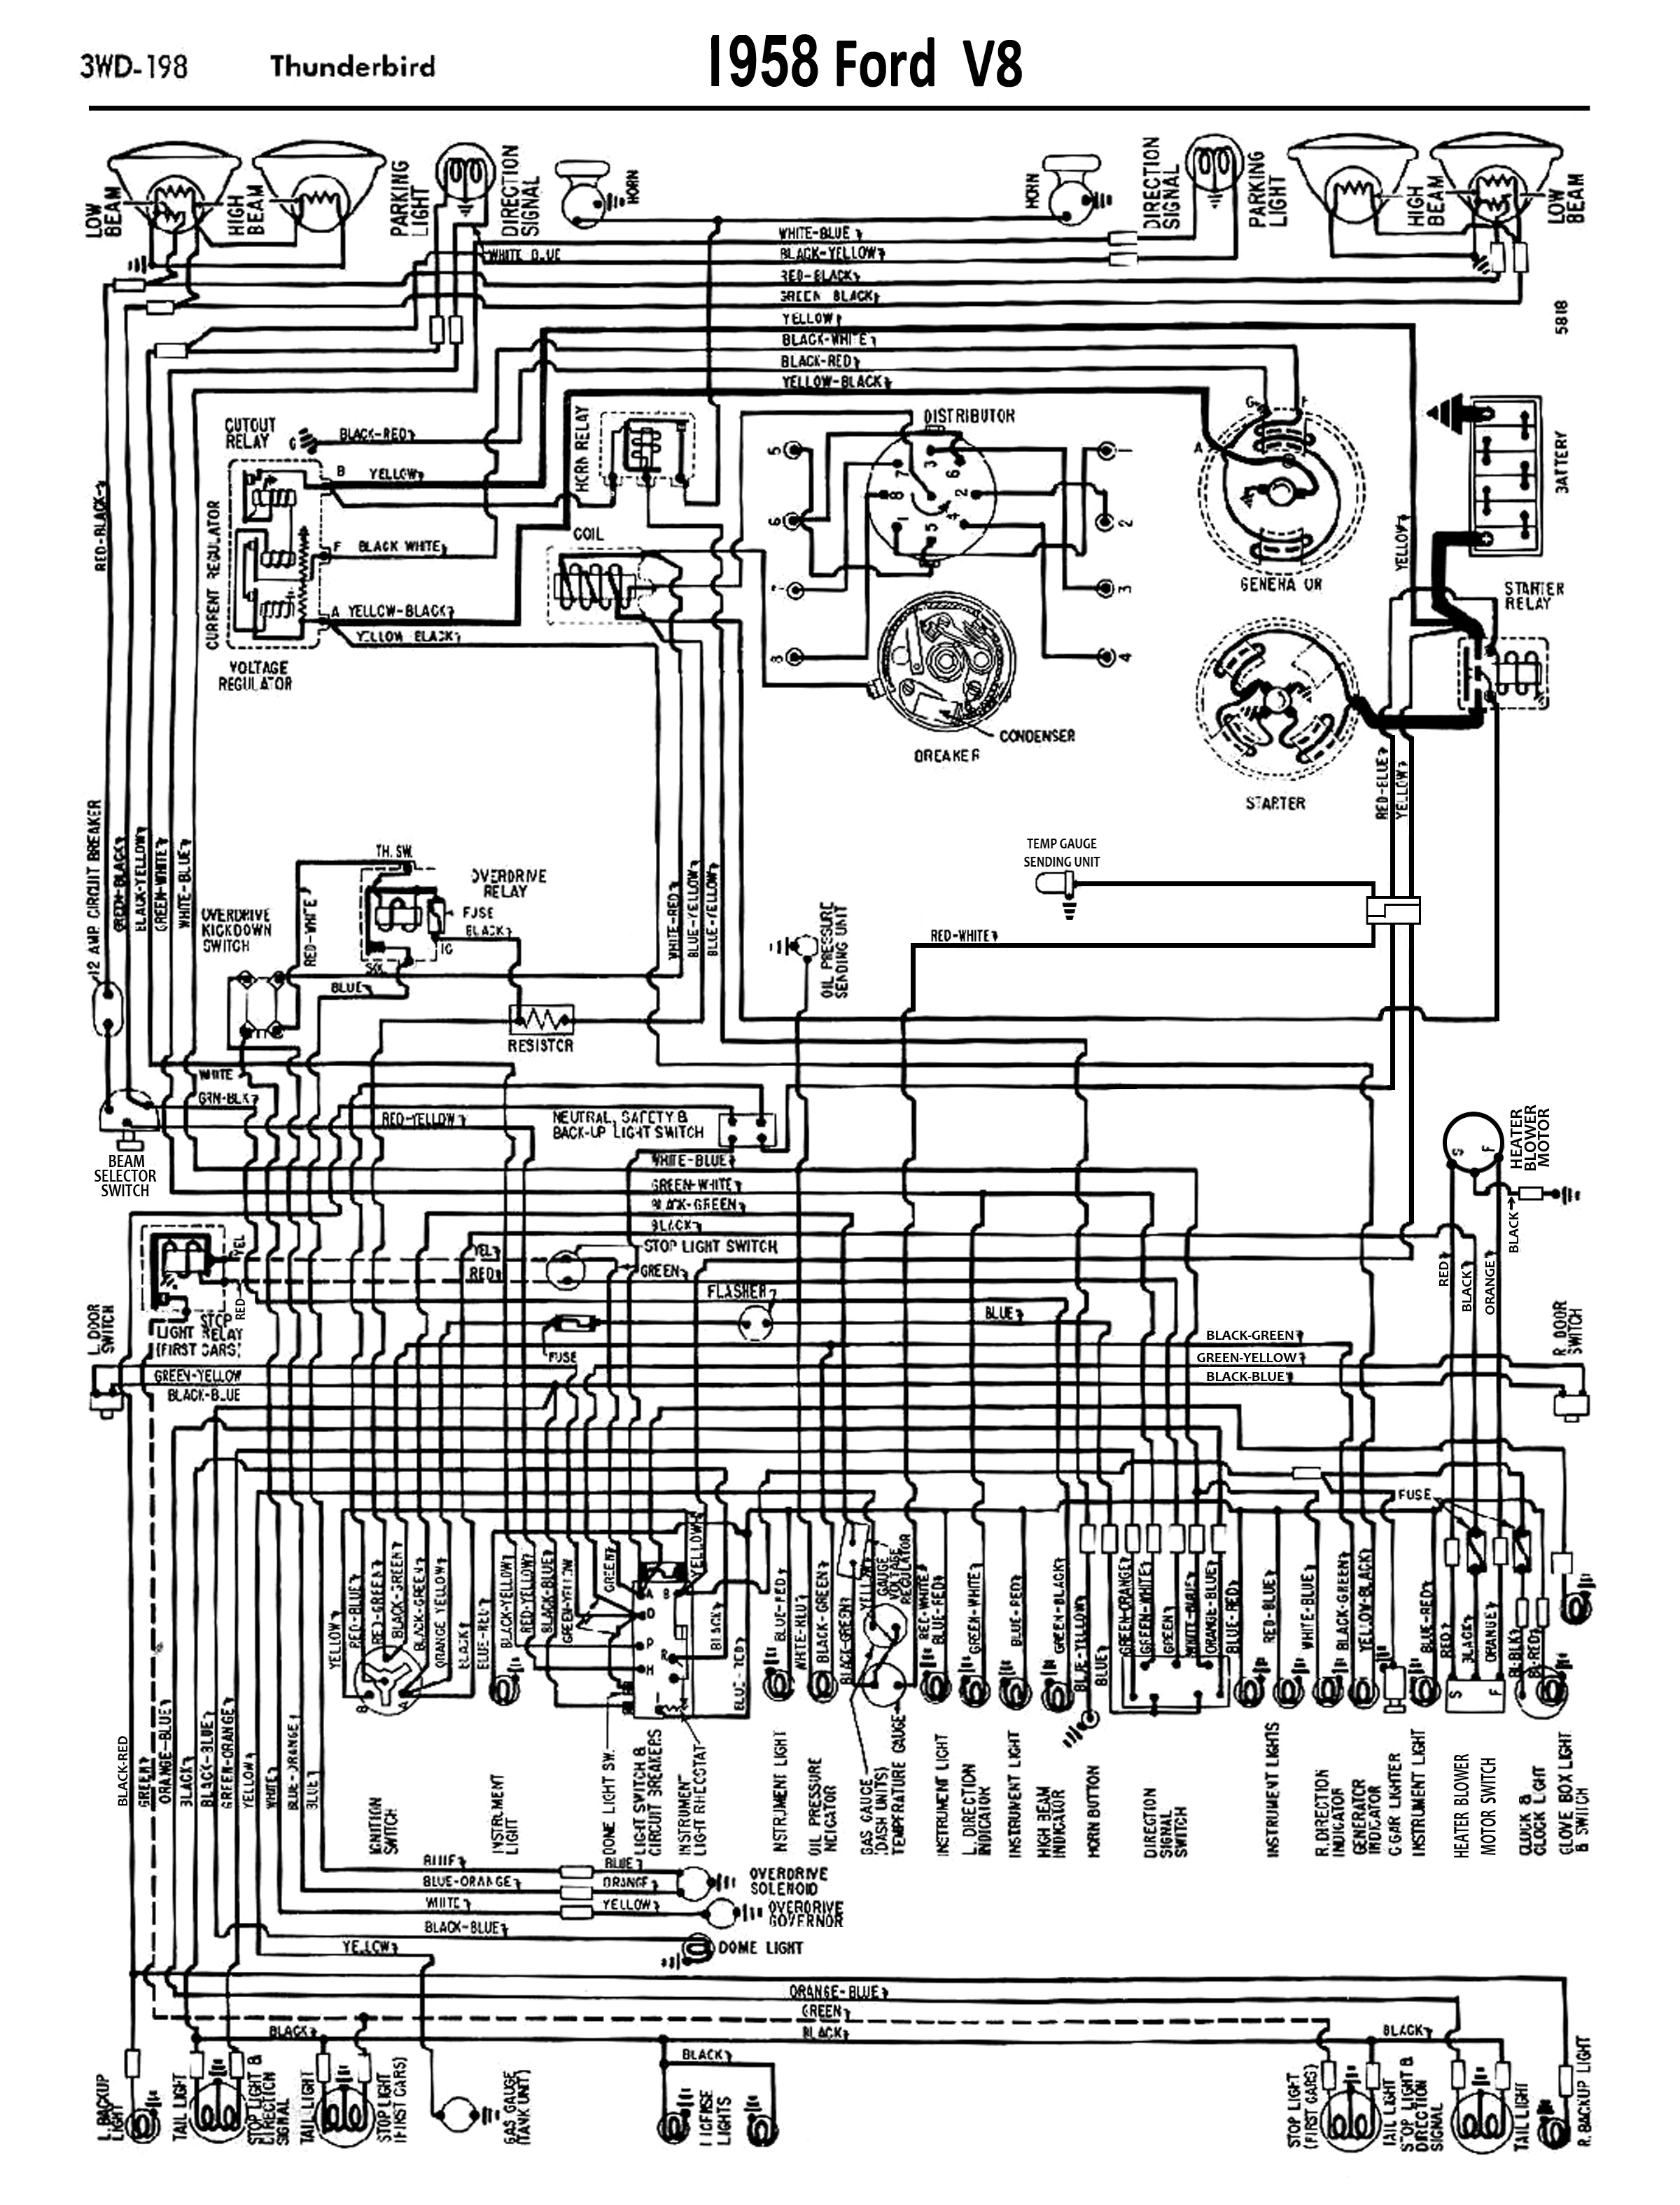 1958 68 Ford Electrical Schematics Instrument Cluster Wiring Diagram Click To Enlarge 1